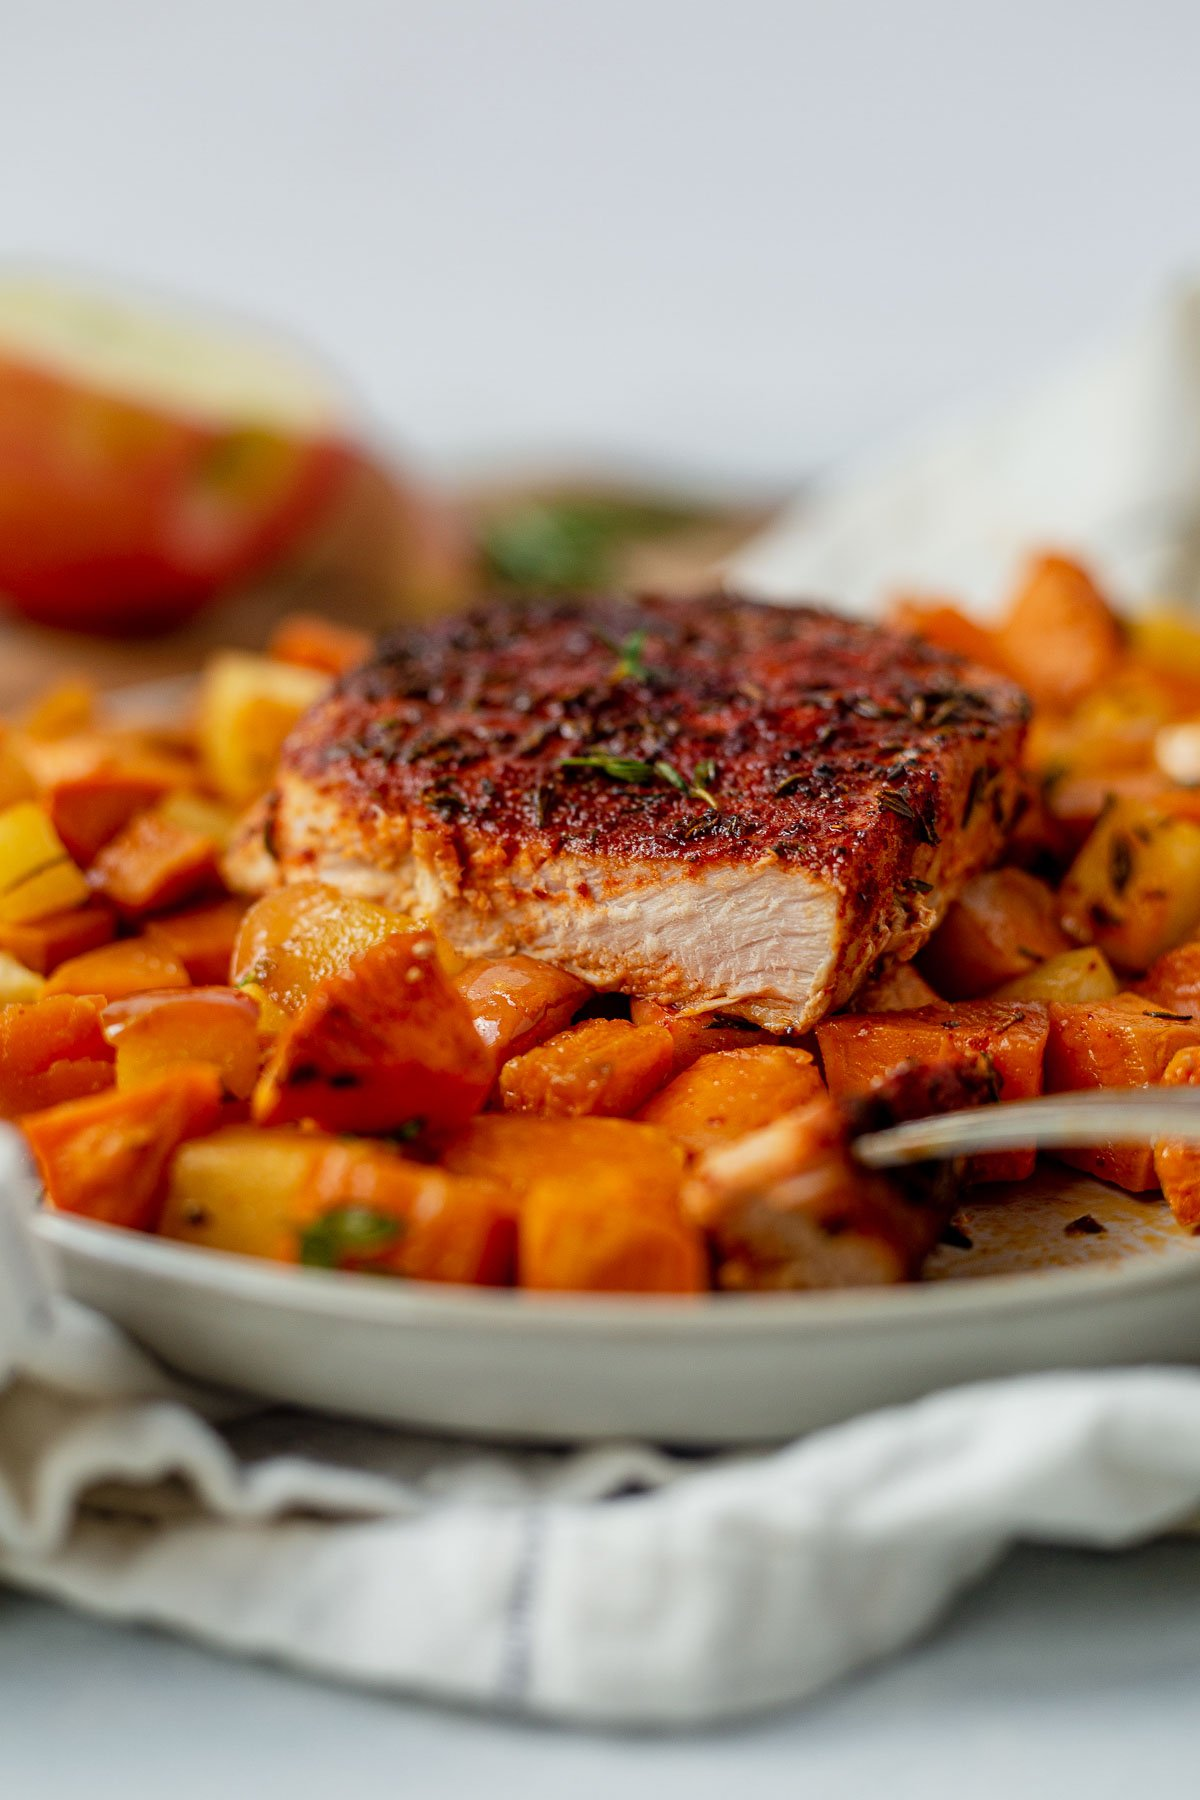 a piece of pork chop with a bite taken out sitting on top of a bed of sweet potatoes and apples